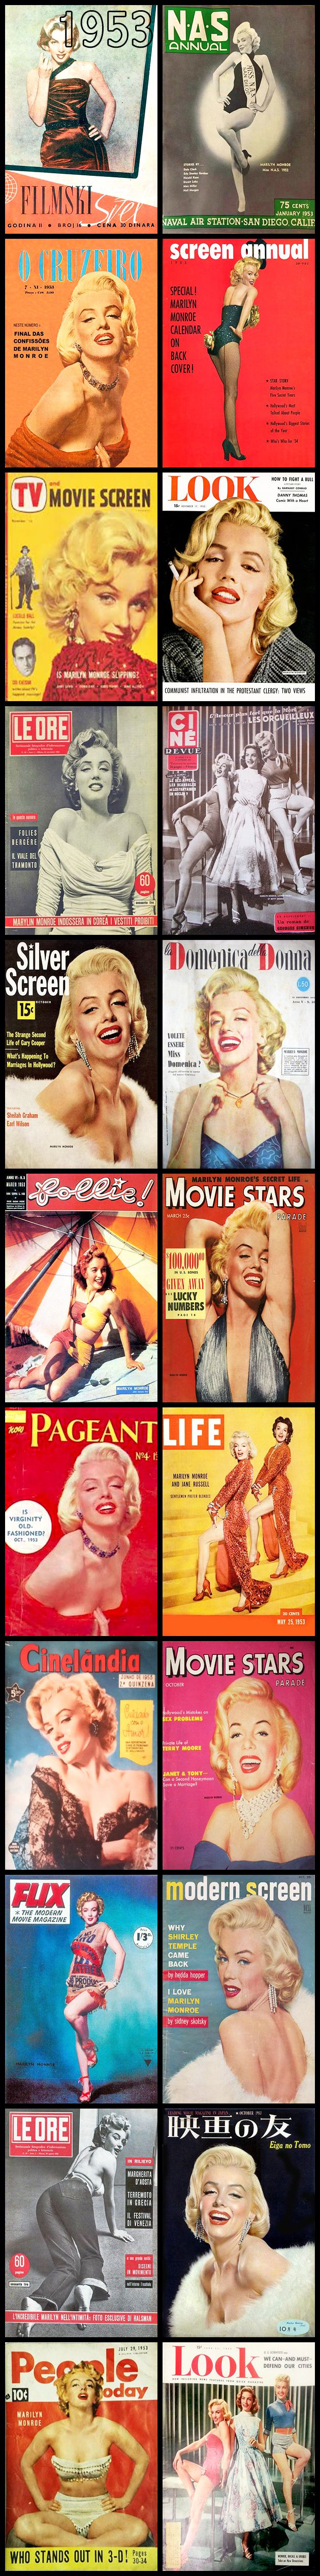 1953, Marilyn Monroe, Magazine, Covers, Collection, Montage, Celebration